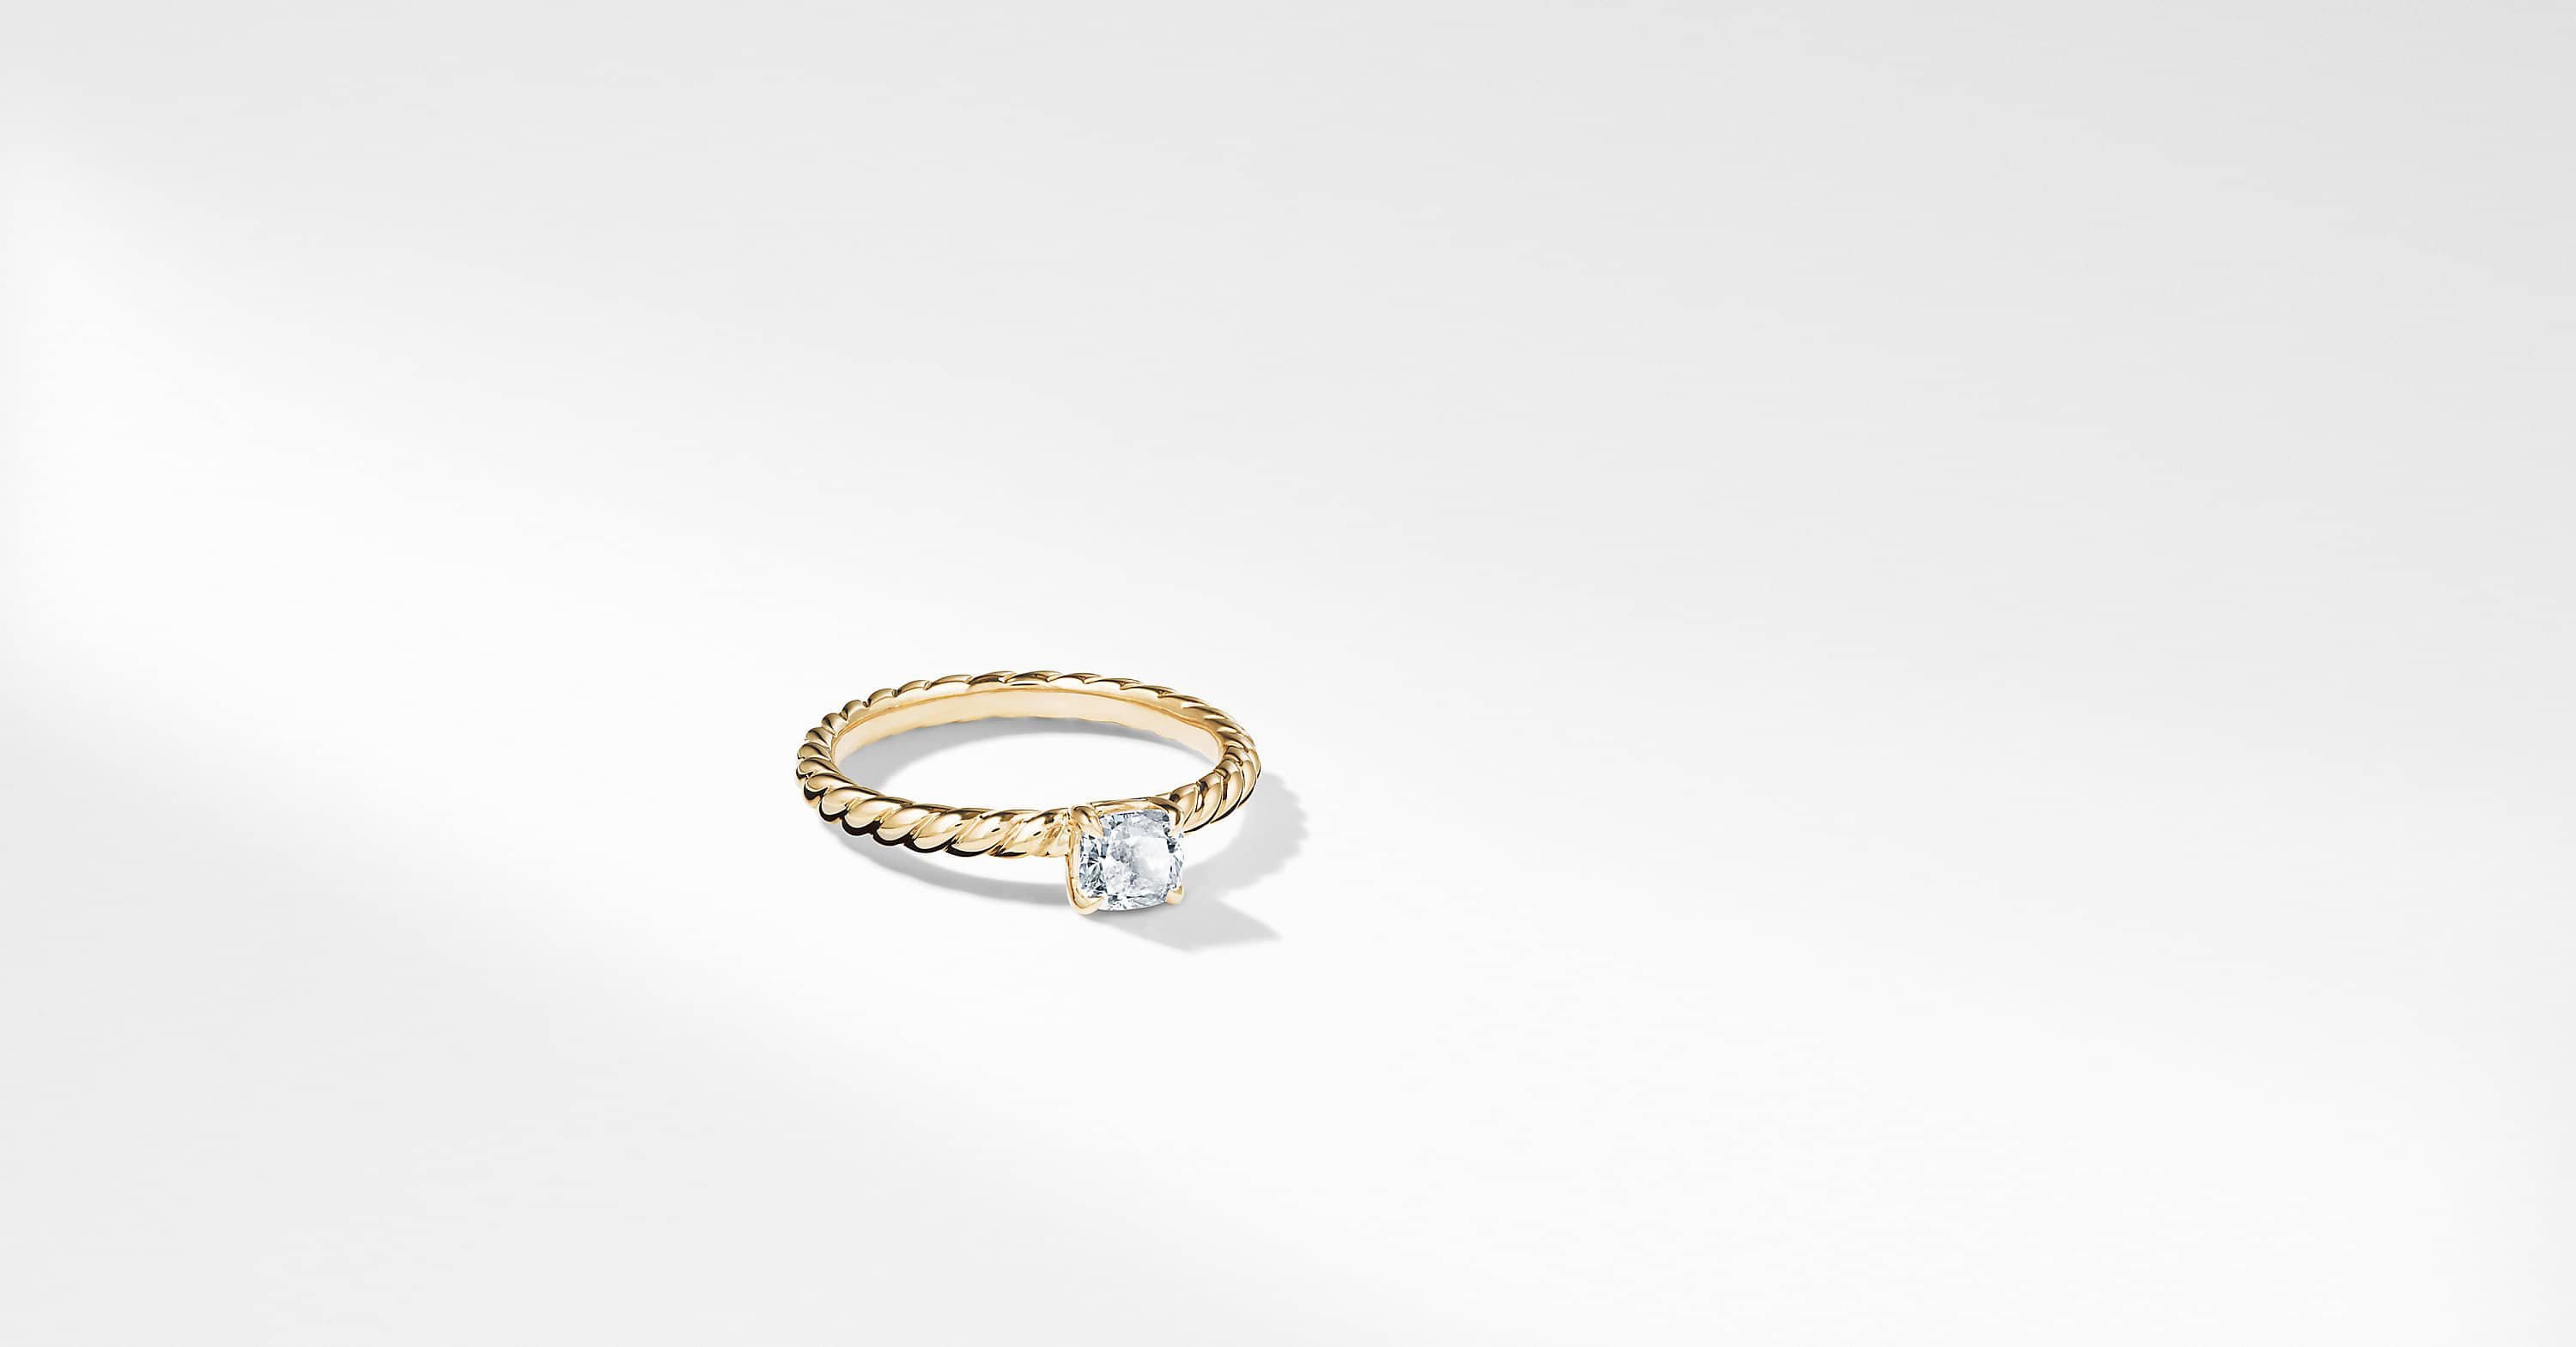 DY Unity Petite Cable Engagement Ring in 18K Yellow Gold, Cushion